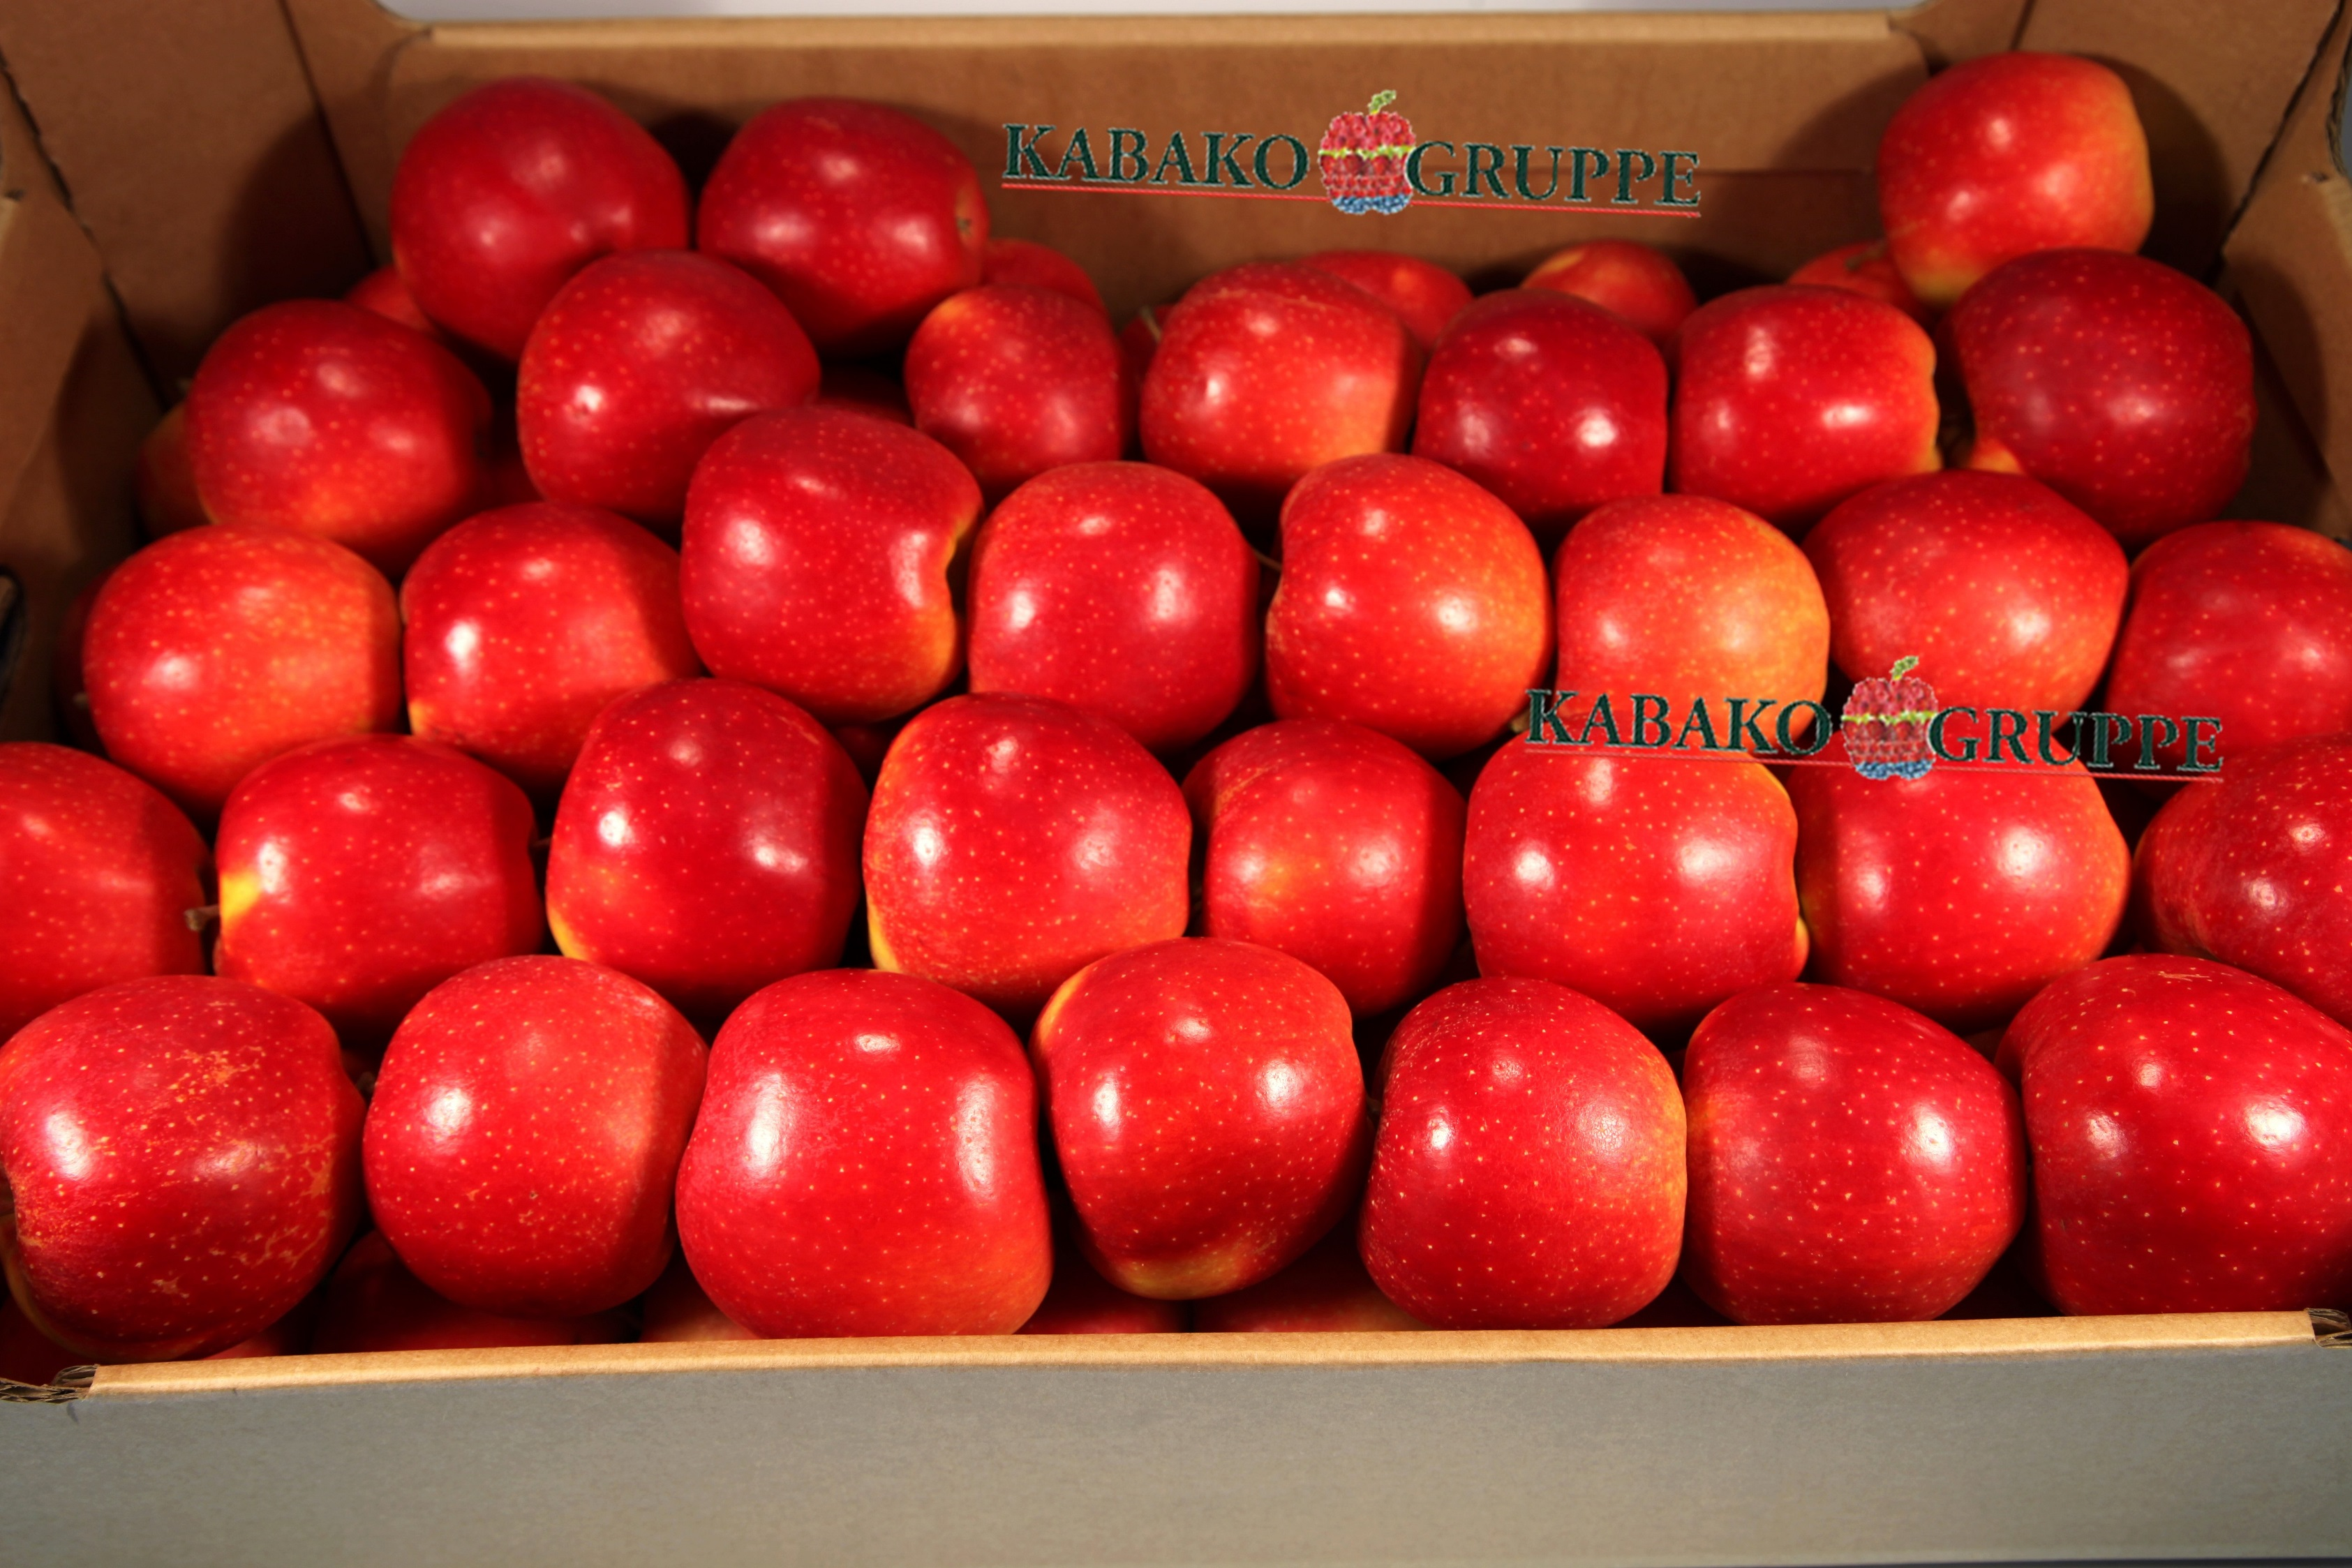 Frozen (IQF) Apples 81